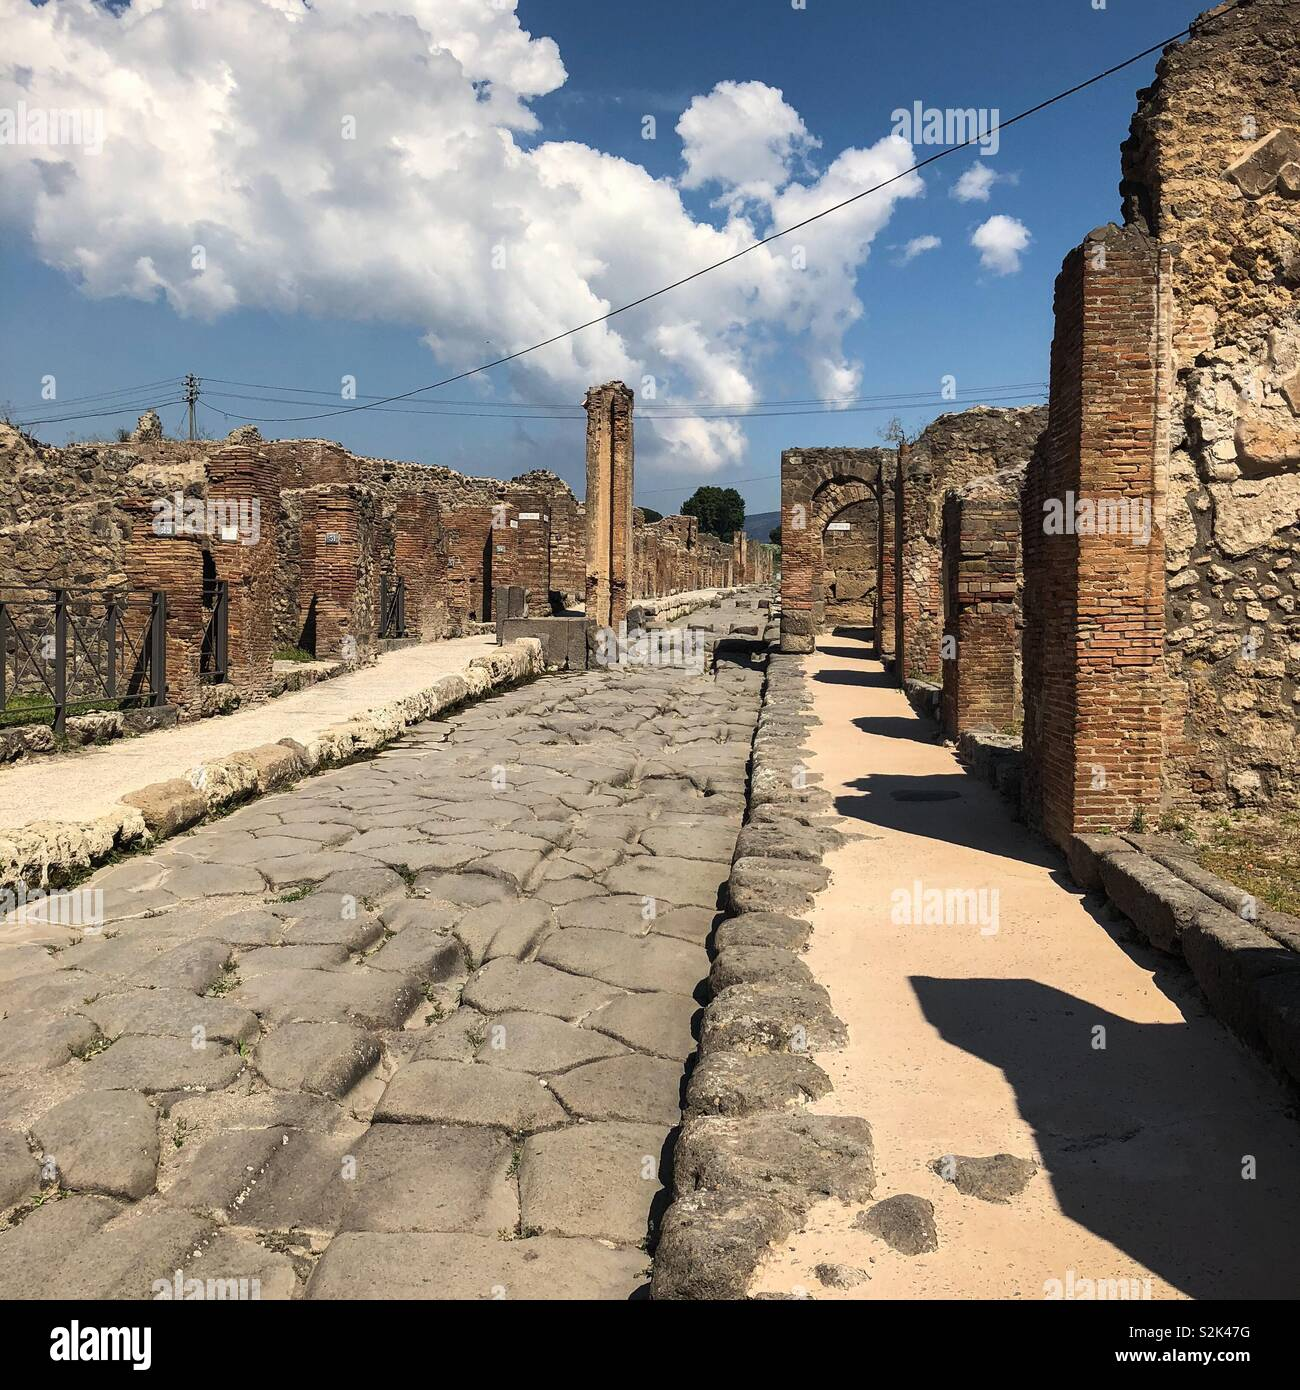 One of the main streets of ancient Pompeii, with ruined walls of town houses but amazingly well preserved paving slabs and pavements - Stock Image